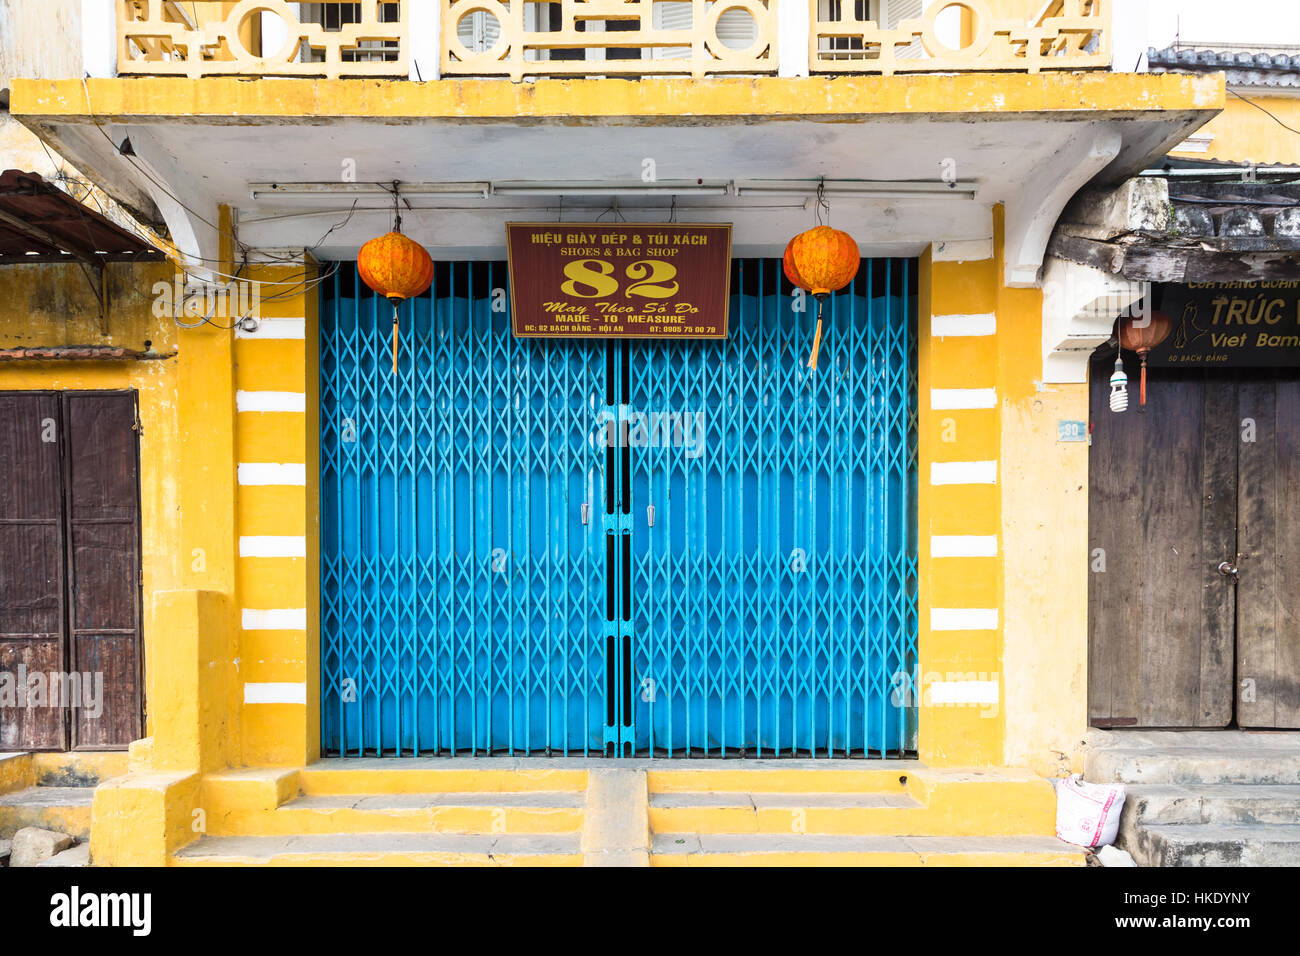 HOI AN, VIETNAM - FEBRUARY 7, 2016: A colorful facade in Hoi An old town. The city in central Vietnam was an important - Stock Image